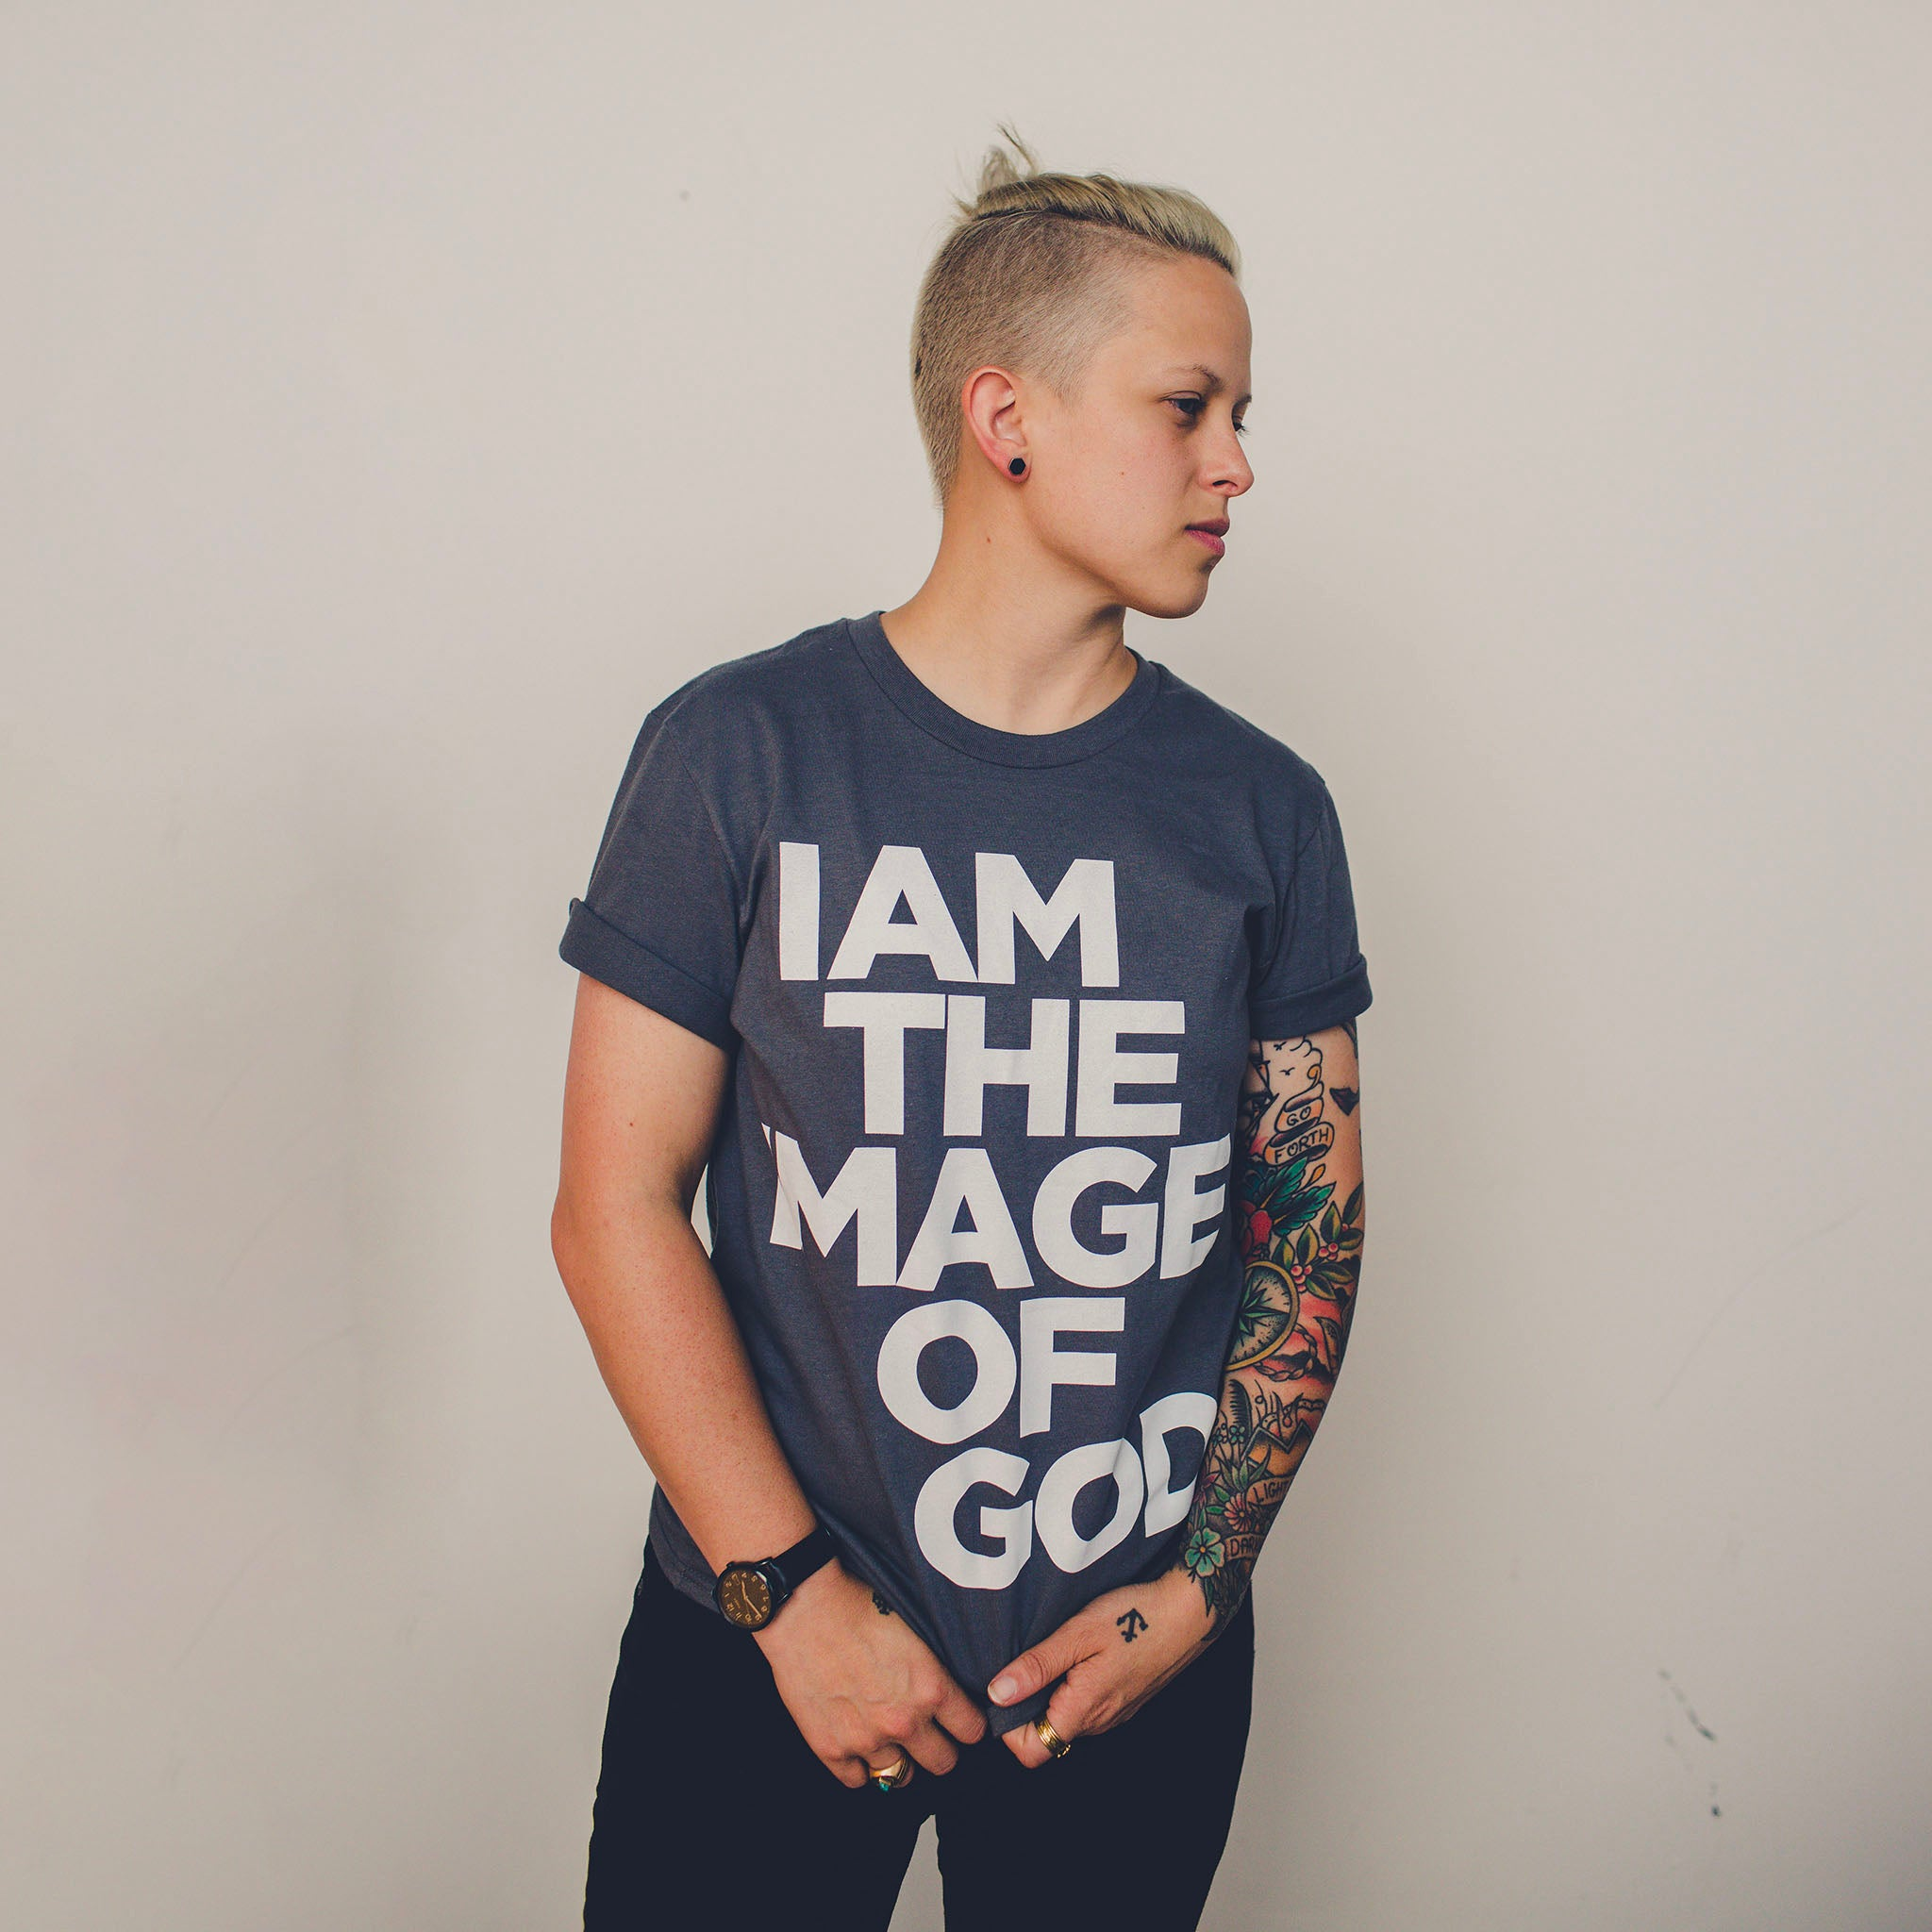 I Am The Image of God Tee - Charcoal